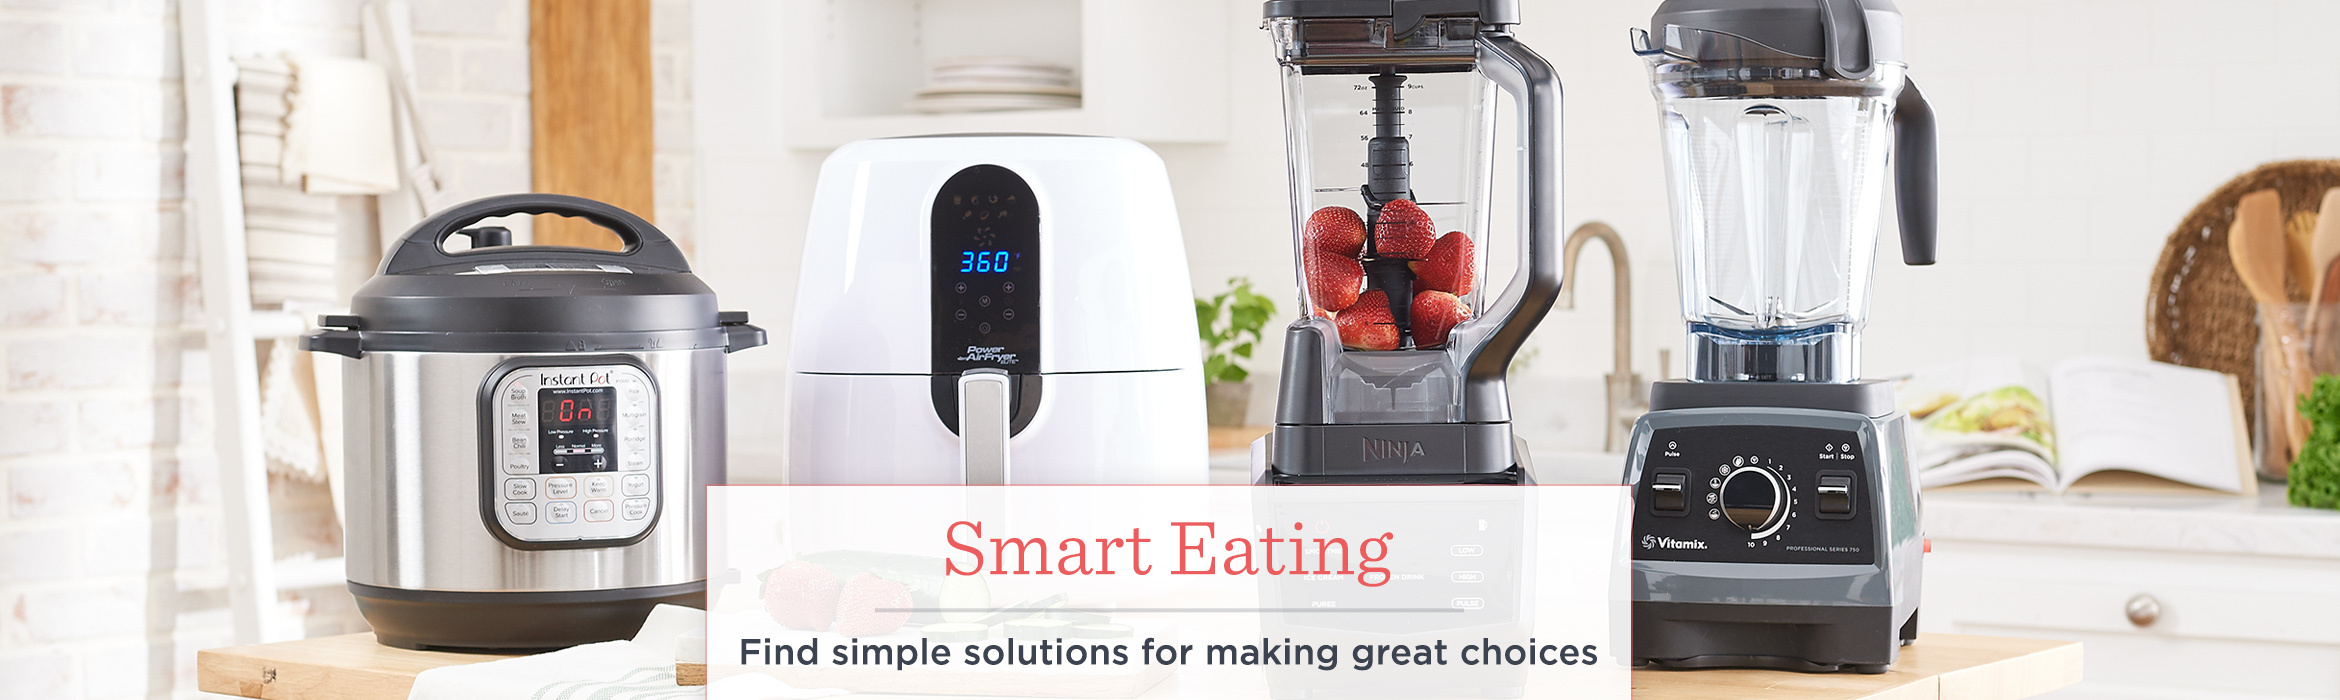 Smart Eating - Find simple solutions for making great choices